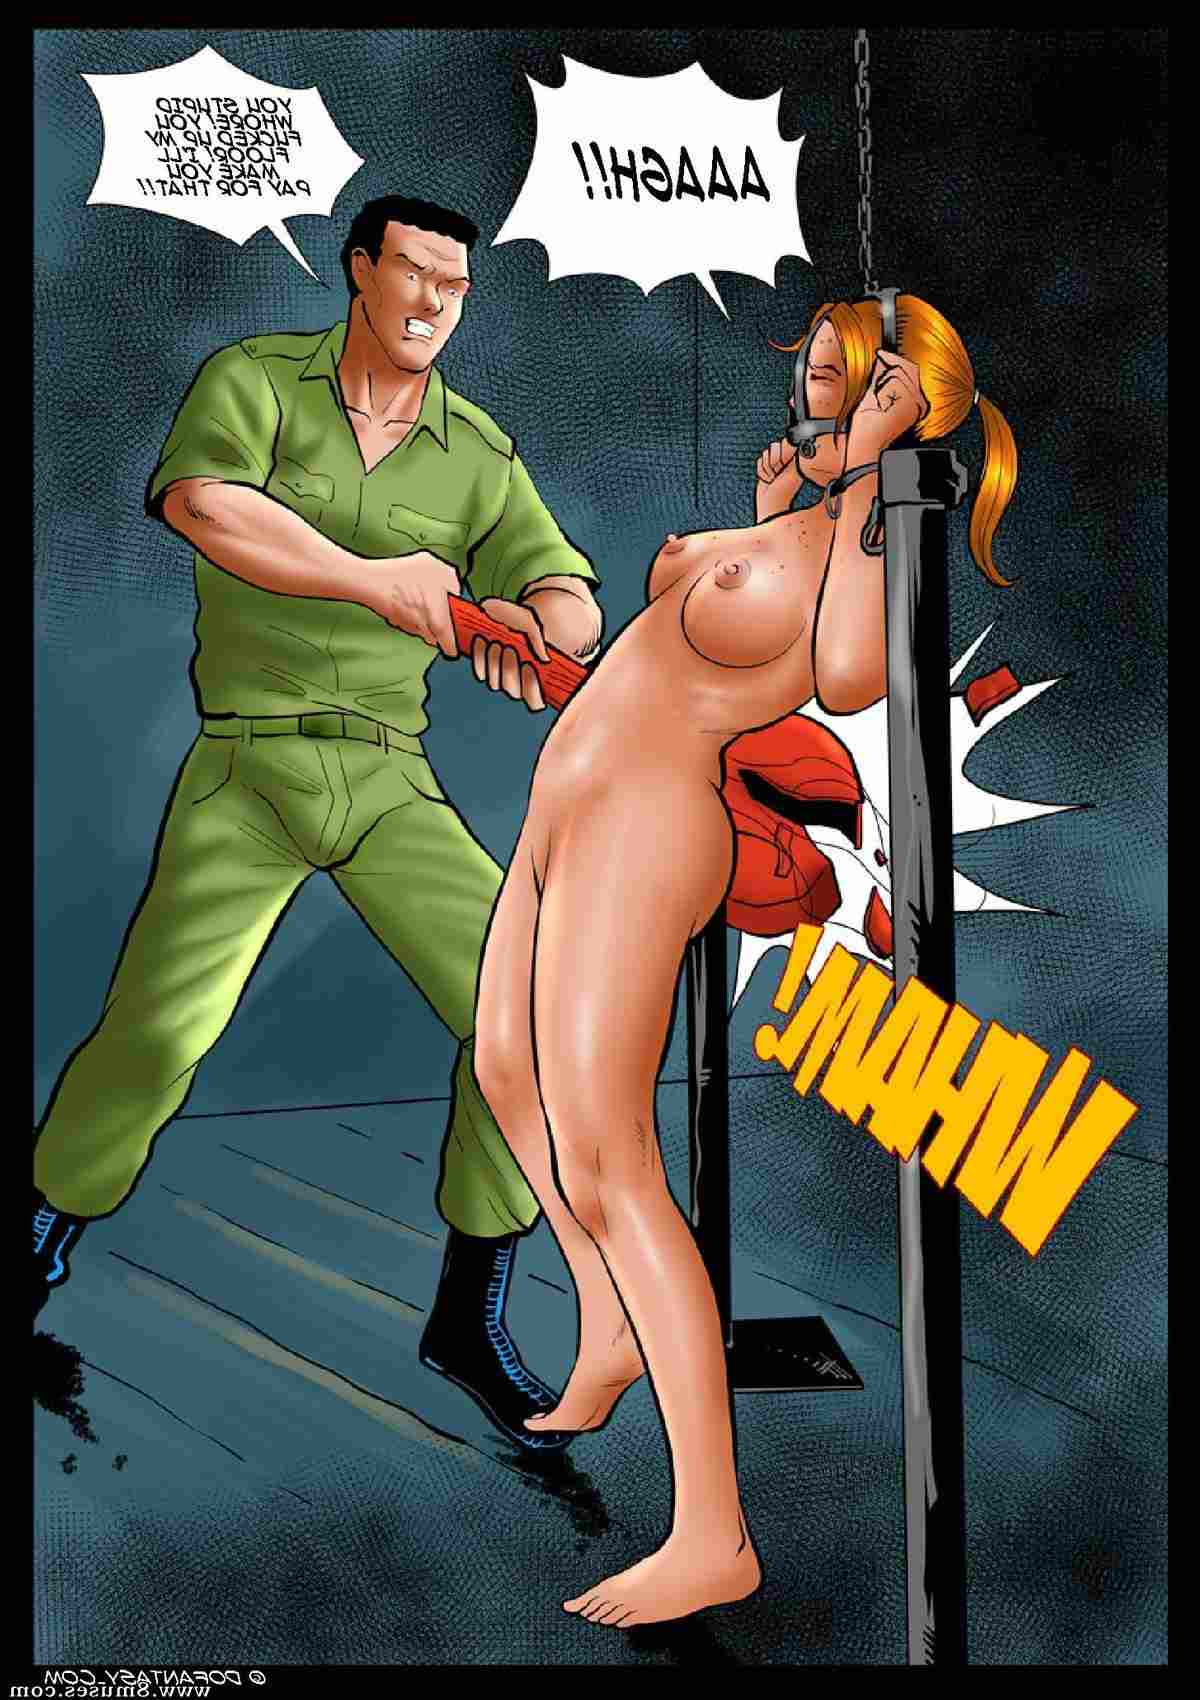 Fansadox-Comics/401-500/Fansadox-413-A-Bold-Officer-Cagri Fansadox_413_-_A_Bold_Officer_-_Cagri__8muses_-_Sex_and_Porn_Comics_40.jpg